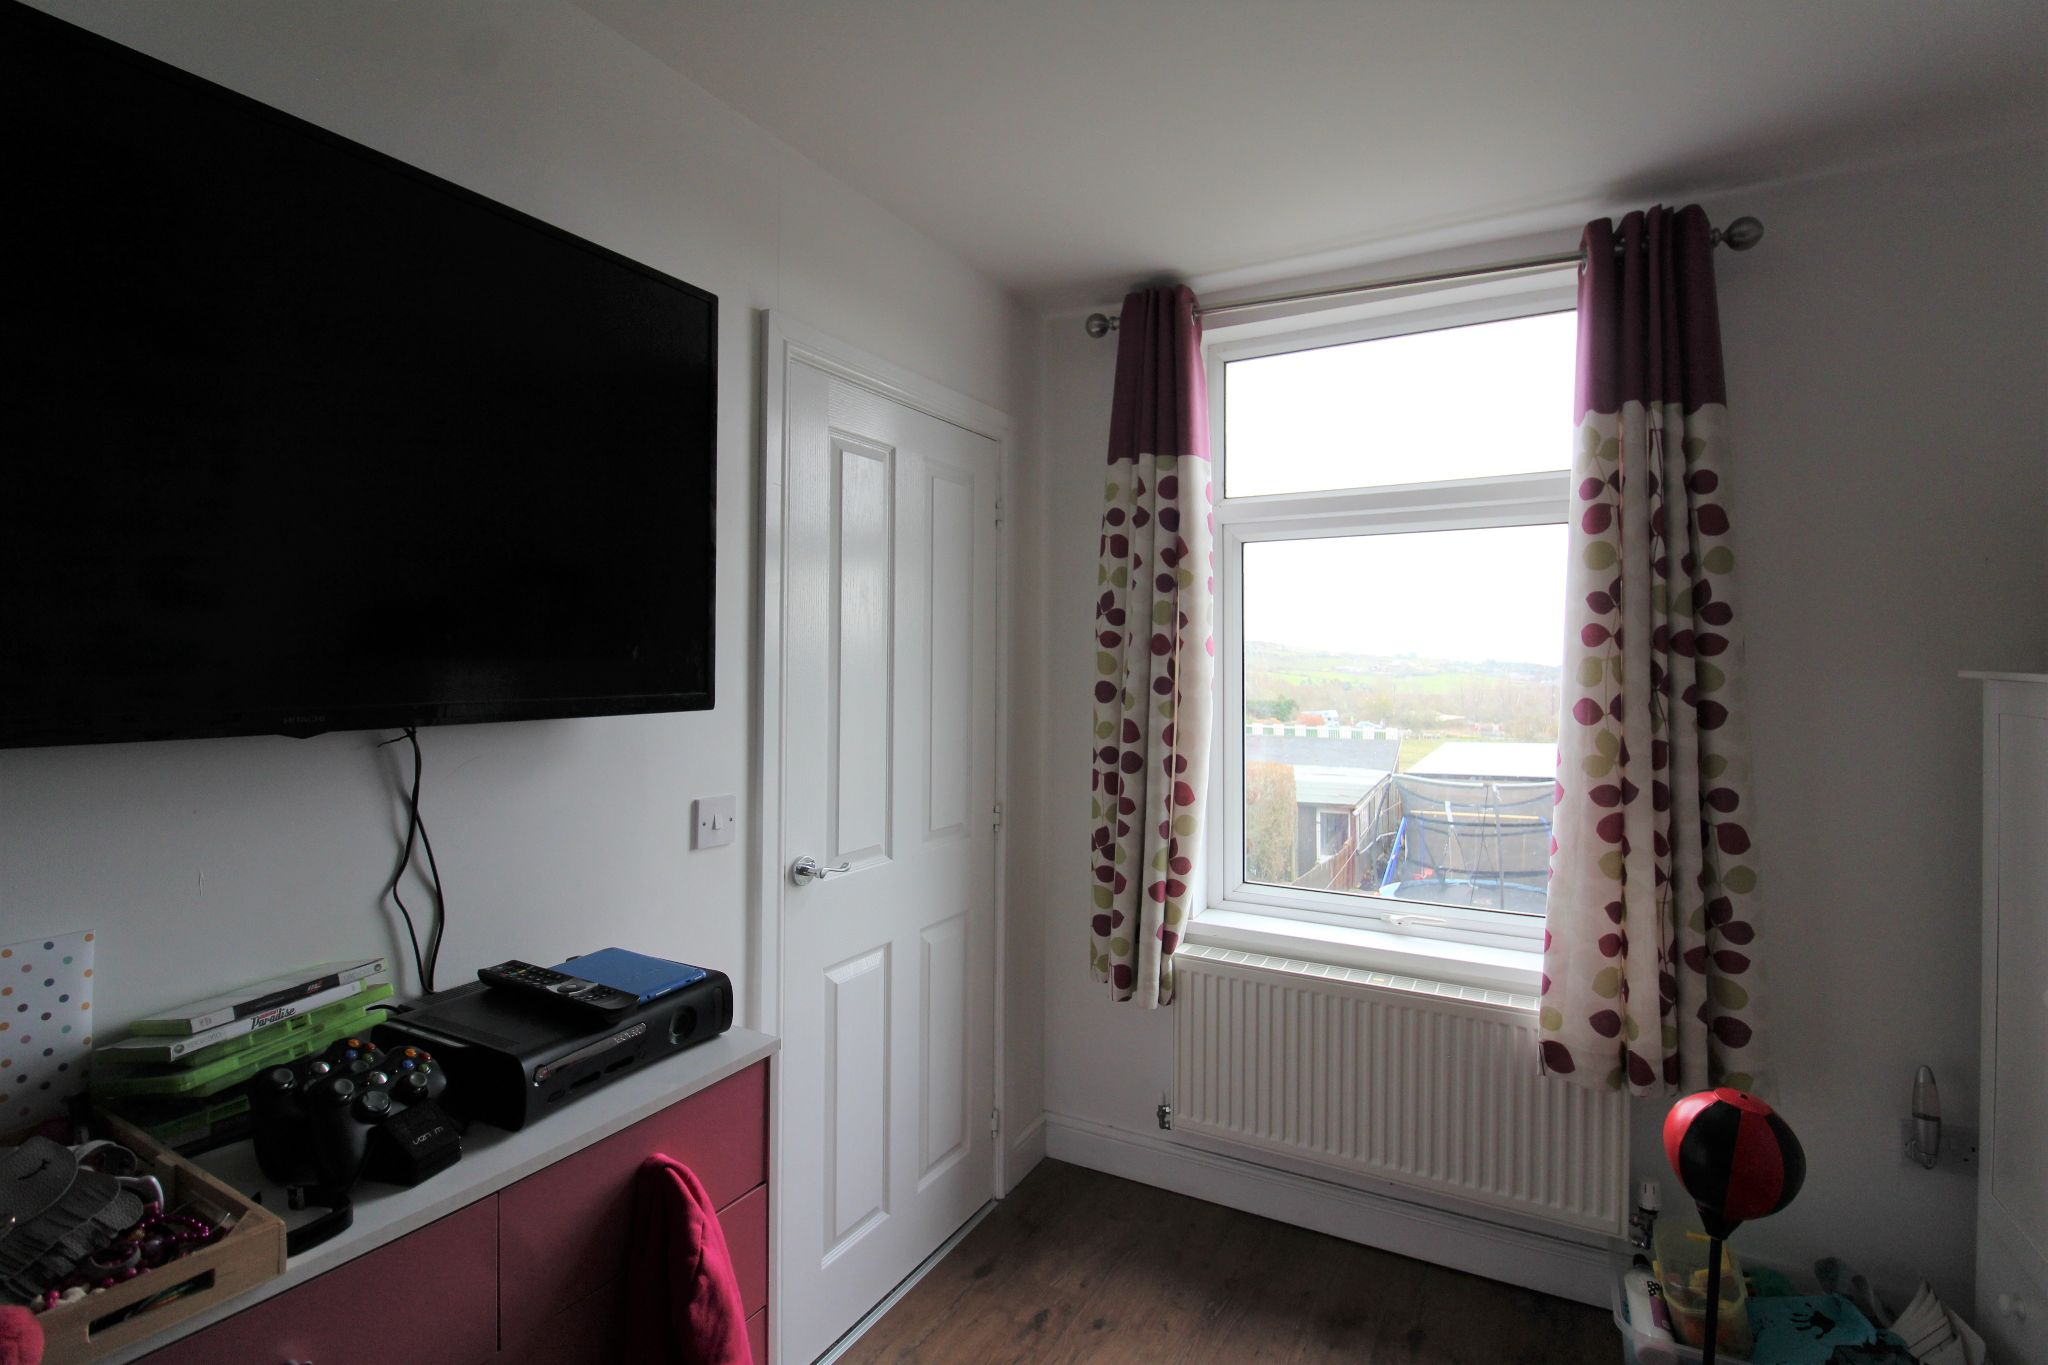 3 bedroom mid terraced house Sale Agreed in Roddymoor - Photograph 18.